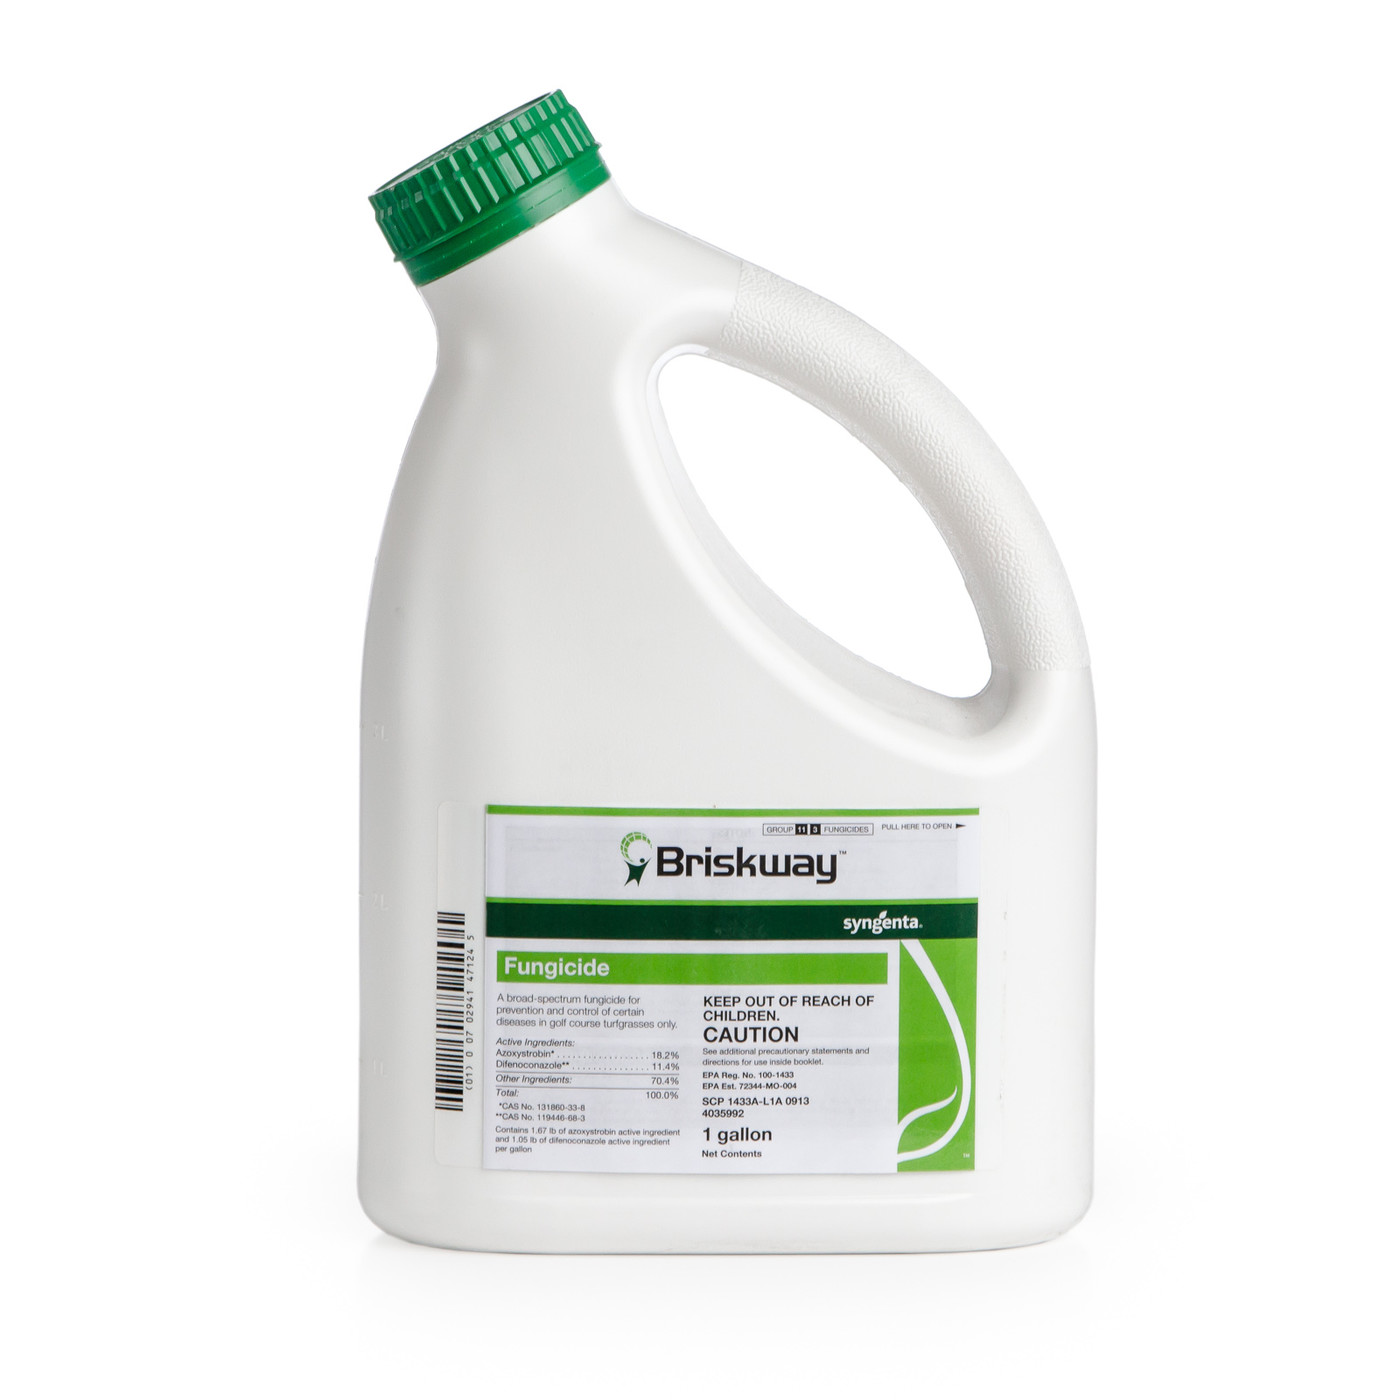 It's just an image of Dramatic 26 Gt Fungicide Label